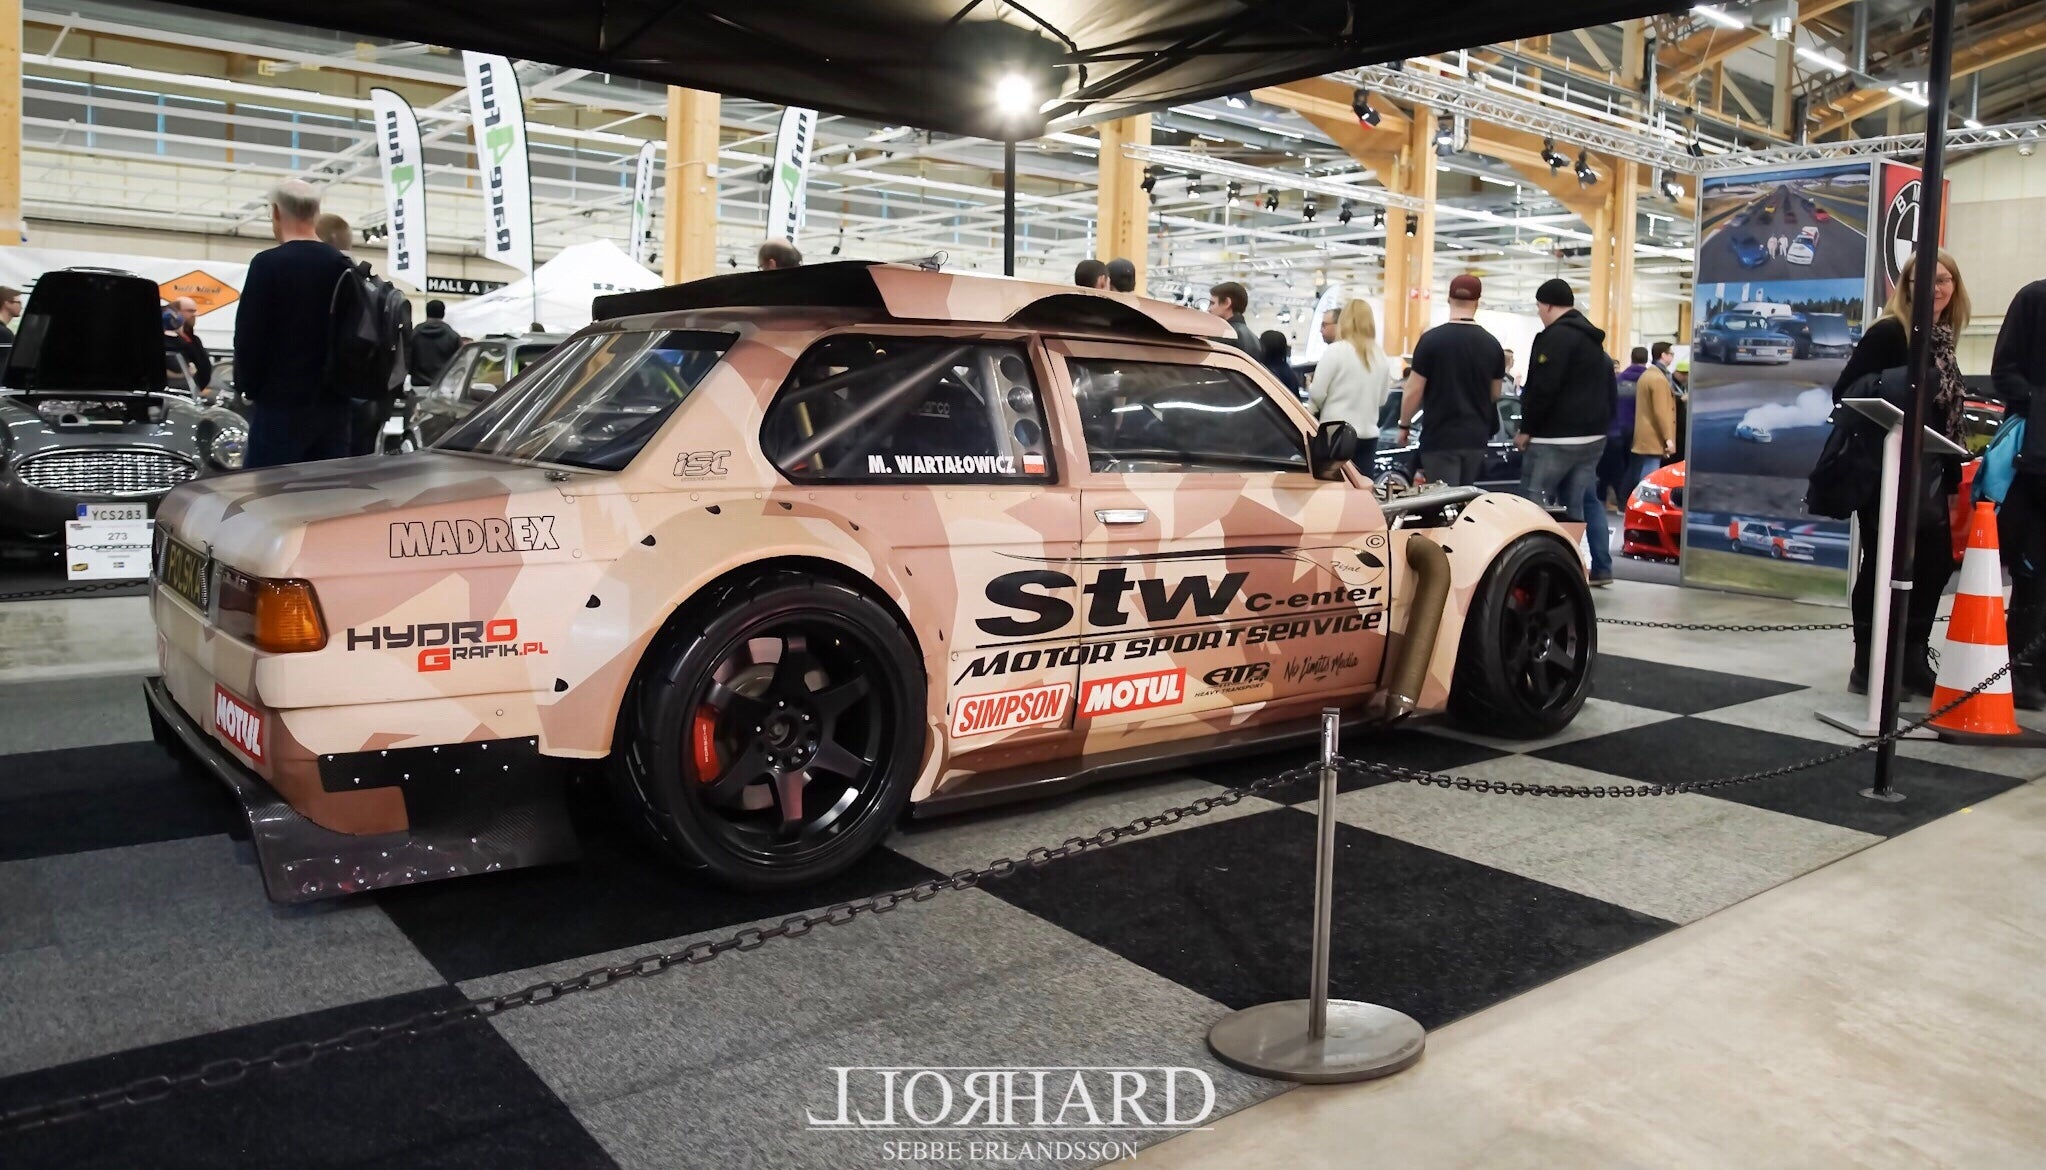 Bilsport Performance and Custom Car Show 2018, Swedish Modified Cars, Swedish custom cars, custom car show, RollHard show coverage, car culture, all makes all models one community